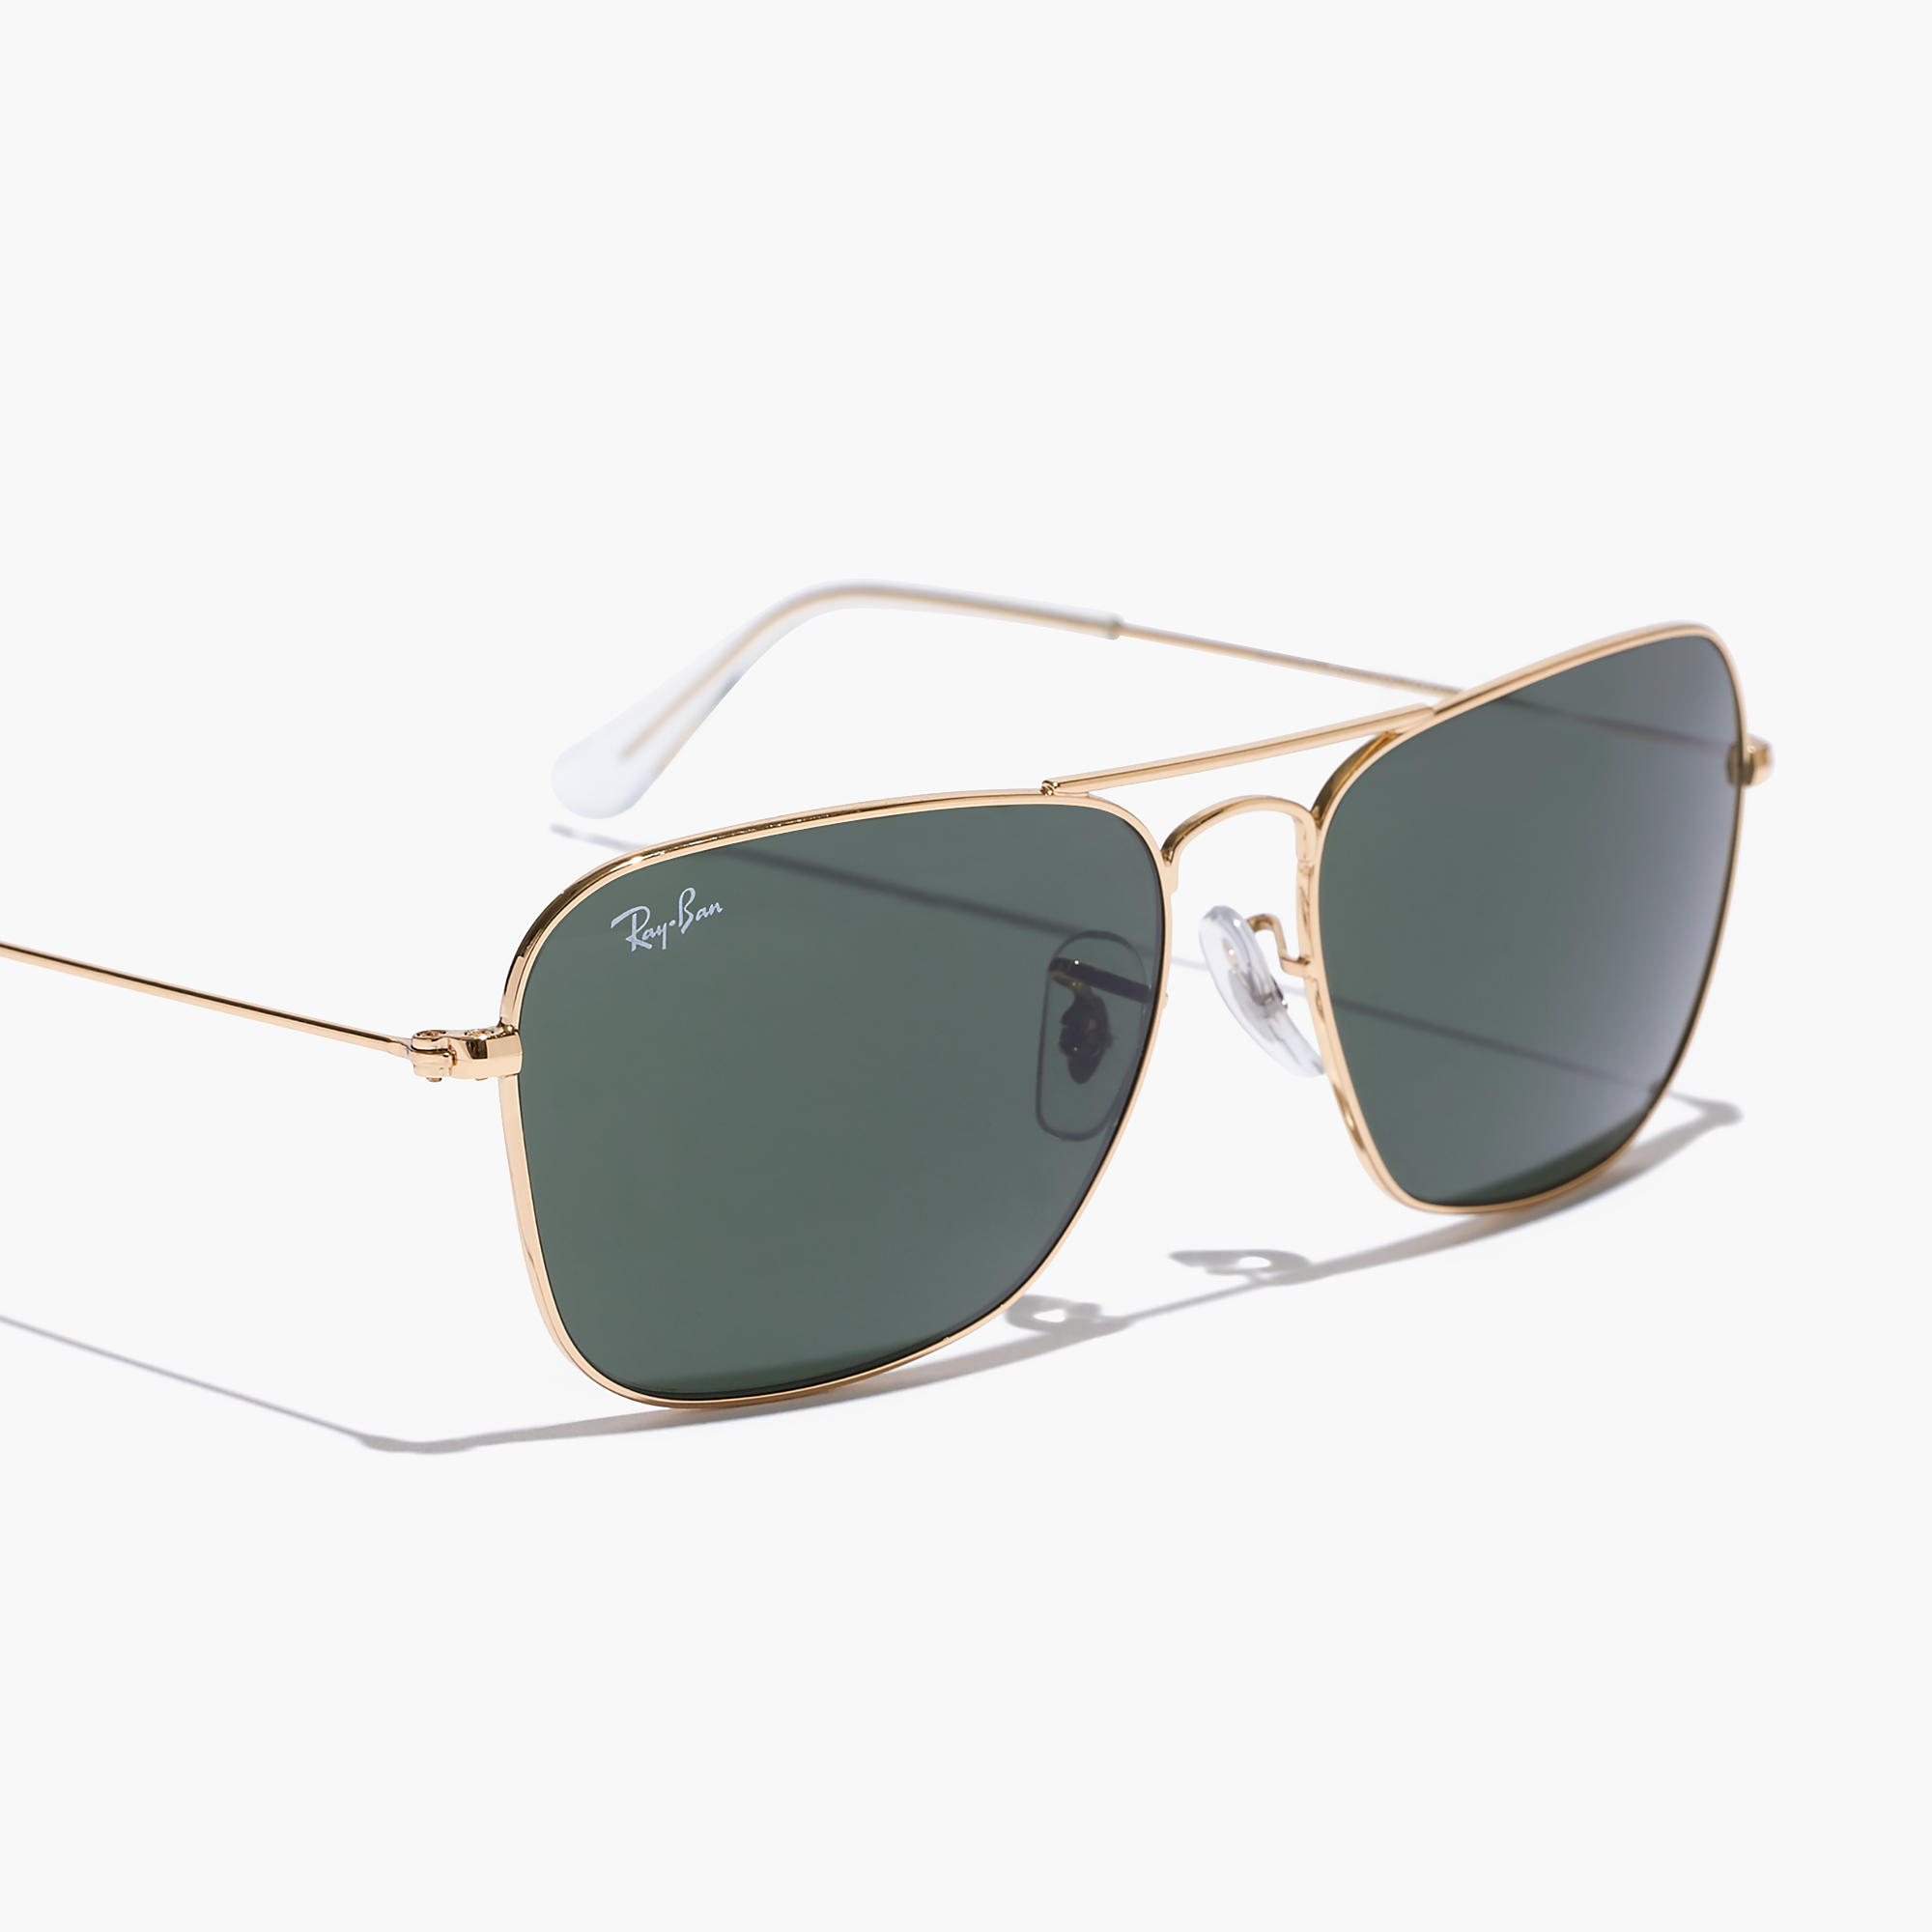 ray ban caravan sunglasses  Ray-Ban庐 Caravan庐 Sunglasses : Ray-Ban